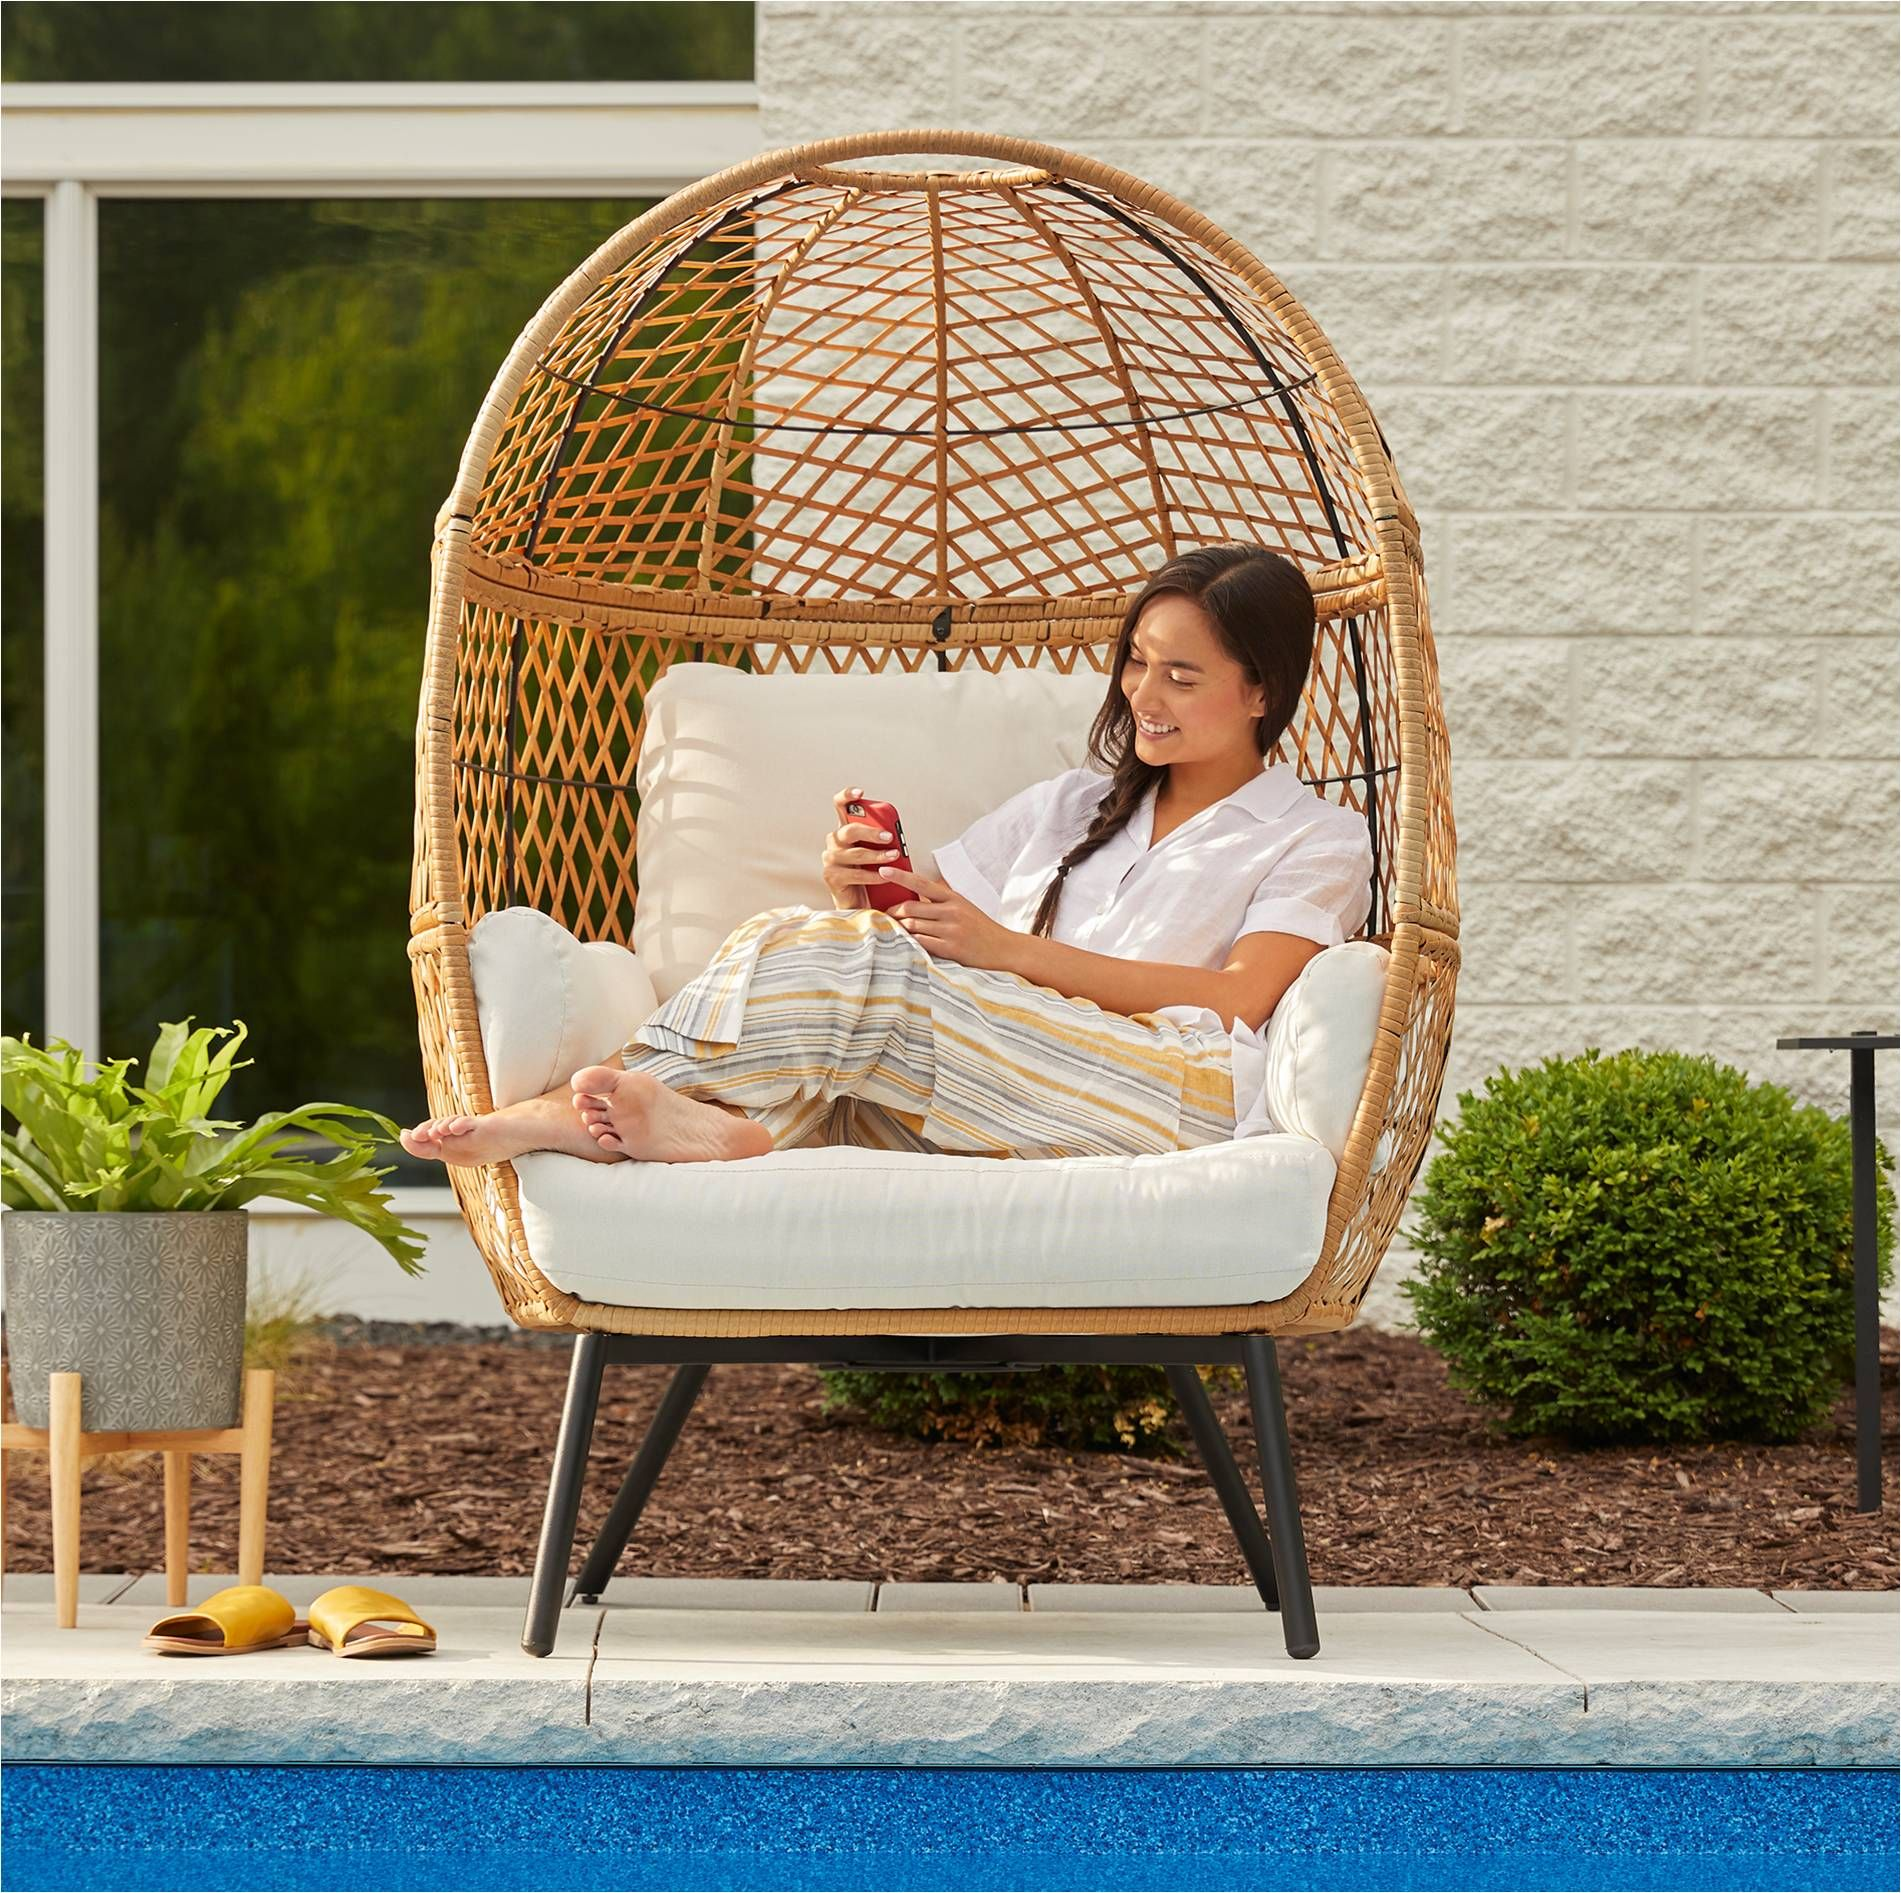 28487ec78f1632a6e0ac66846f839079 - Better Homes And Gardens Resin Wicker Furniture